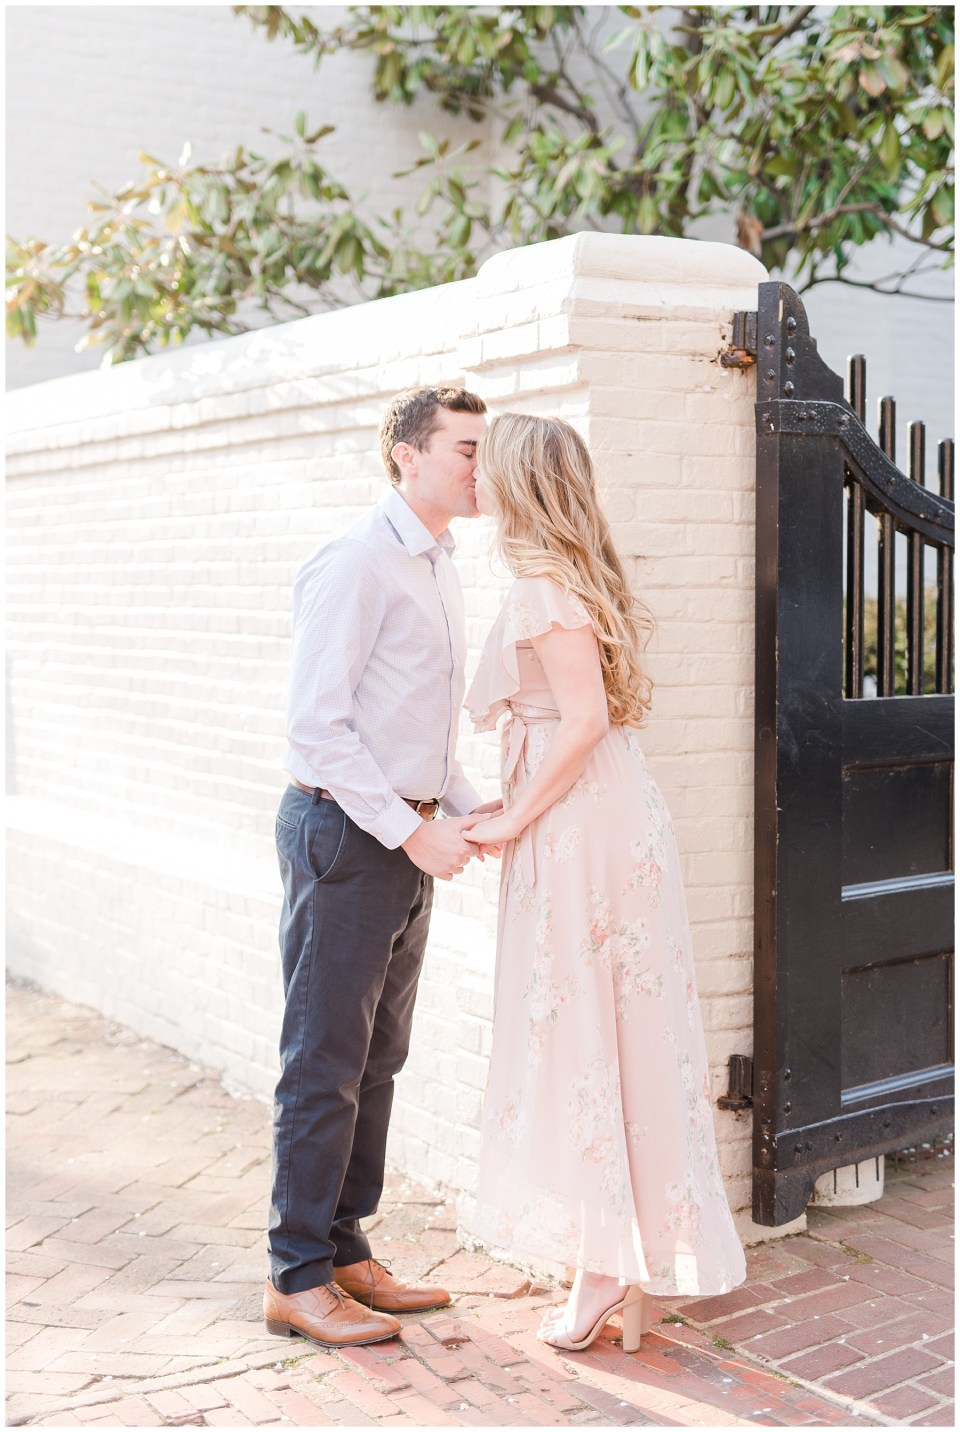 old-town-alexandria-wedding-photographer-sunset-cobblestone-road-waterfront-engagement-photo-10_photos.jpg